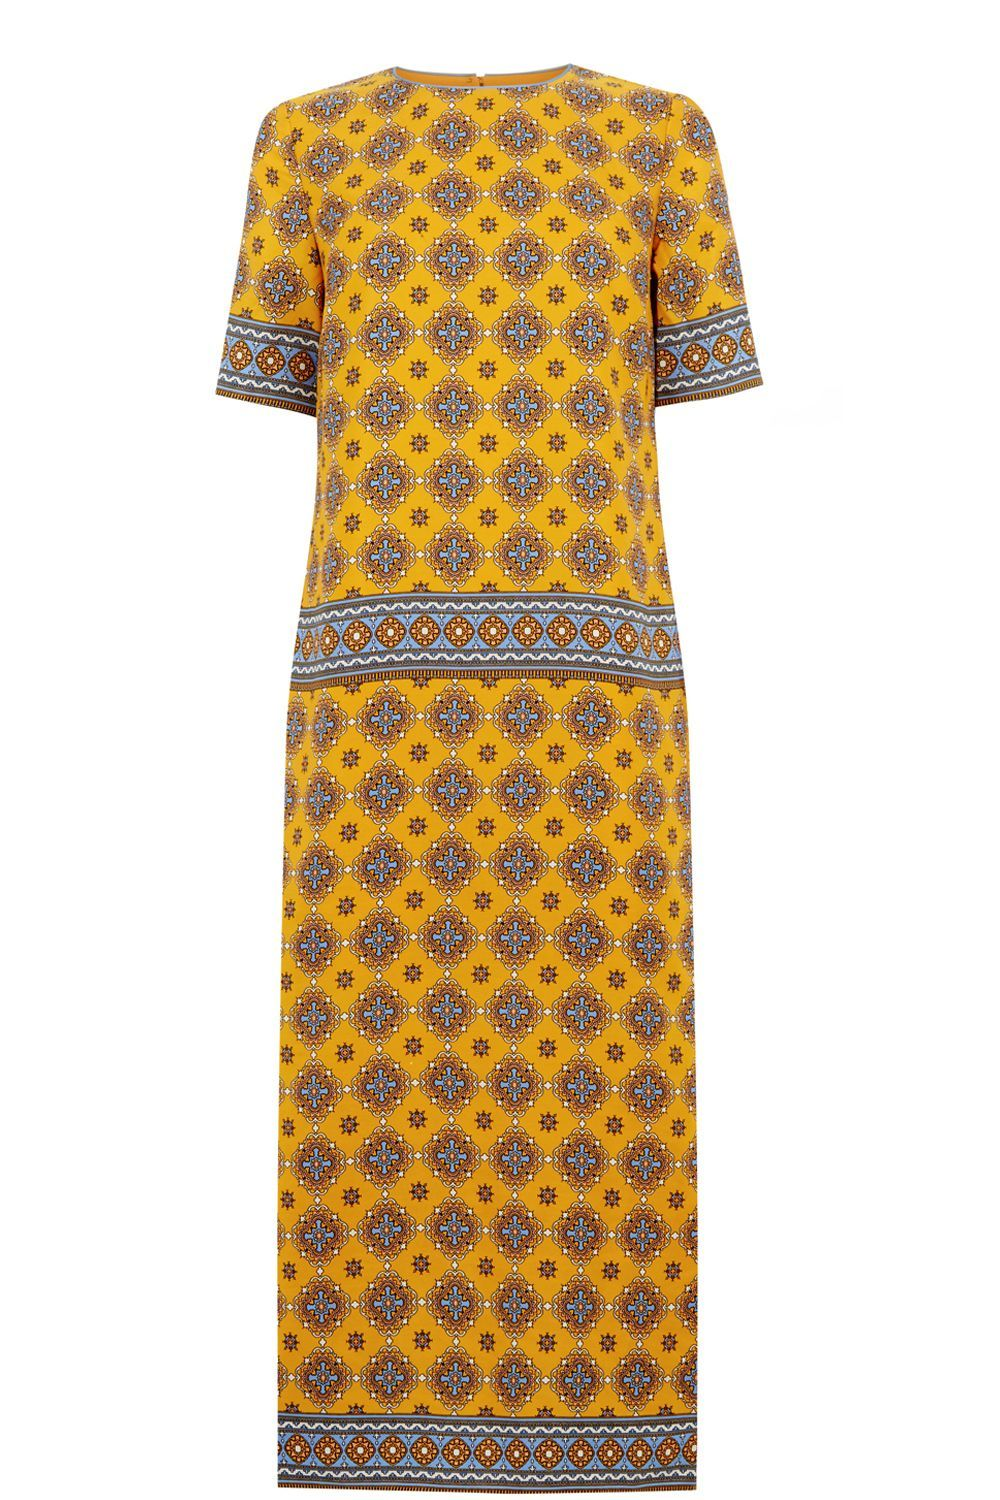 Tile Print Column Midi Dress, Mustard Yellow - style: shift; length: calf length; pattern: paisley; secondary colour: turquoise; predominant colour: mustard; occasions: casual, creative work; fit: straight cut; fibres: polyester/polyamide - 100%; neckline: crew; sleeve length: short sleeve; sleeve style: standard; pattern type: fabric; pattern size: standard; texture group: woven light midweight; multicoloured: multicoloured; season: a/w 2016; wardrobe: highlight